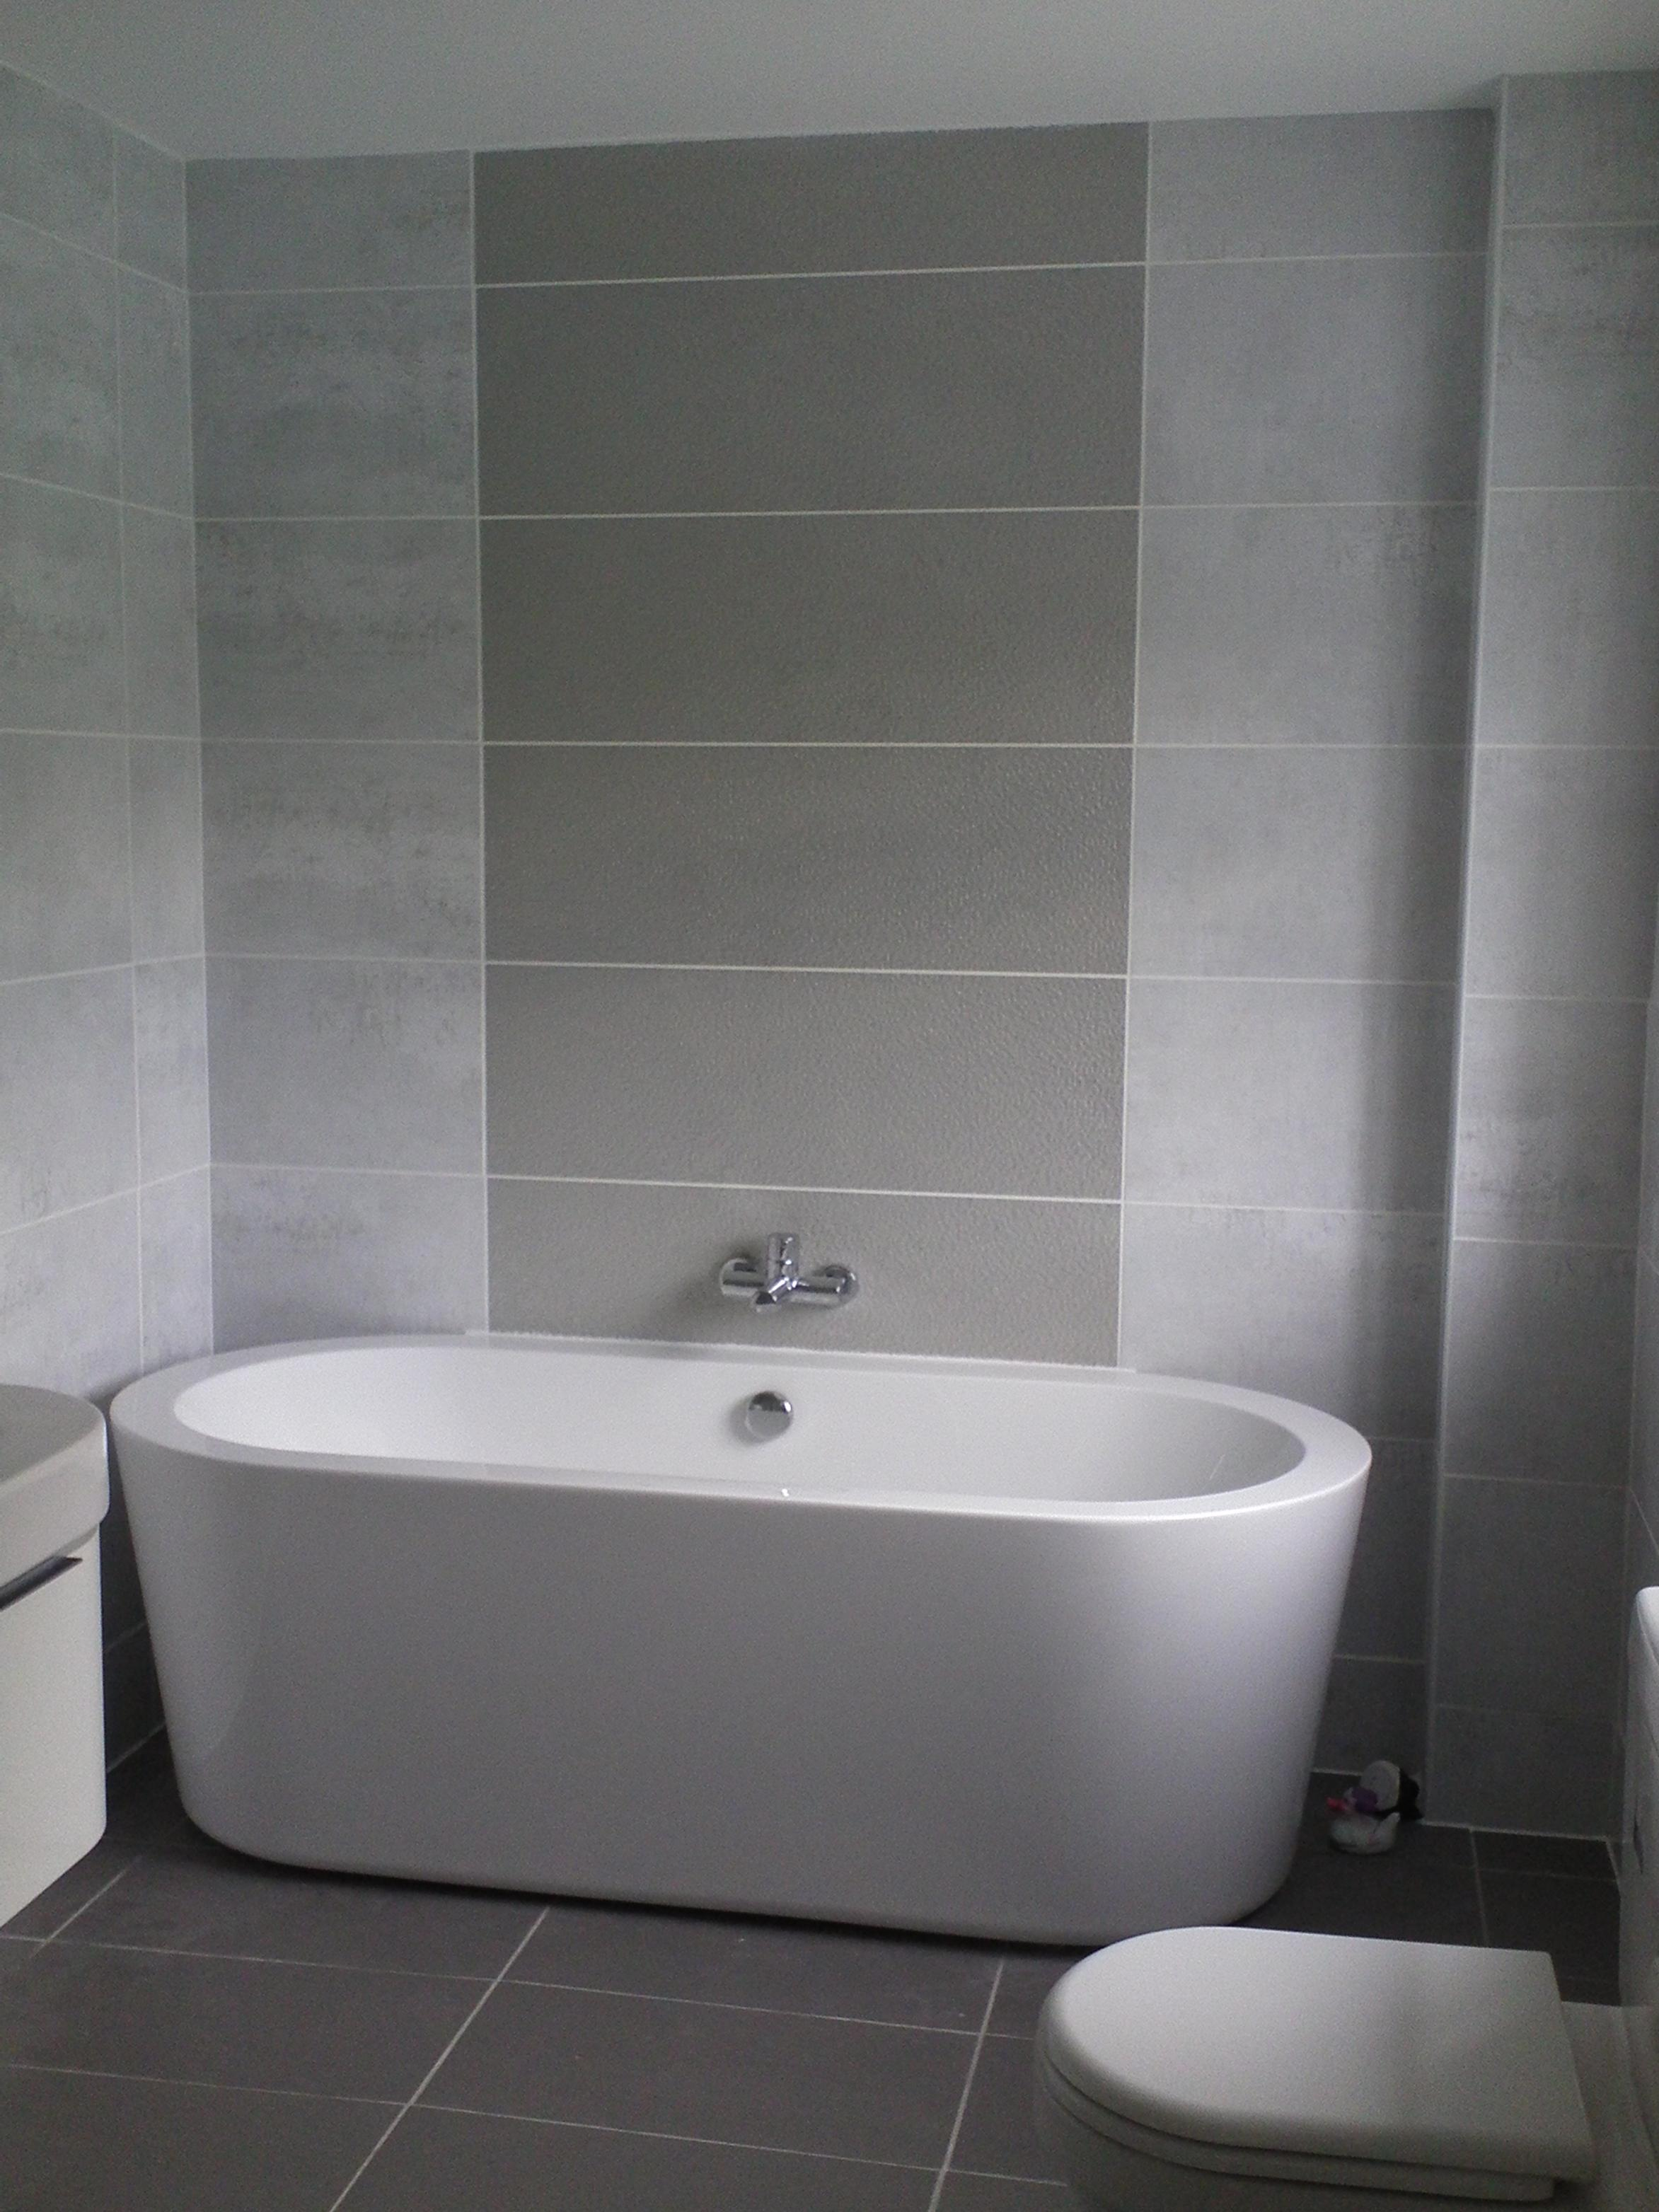 and tile pin tiles wood gray organic bathroom subtle slate undertones an modern with dark industrial home